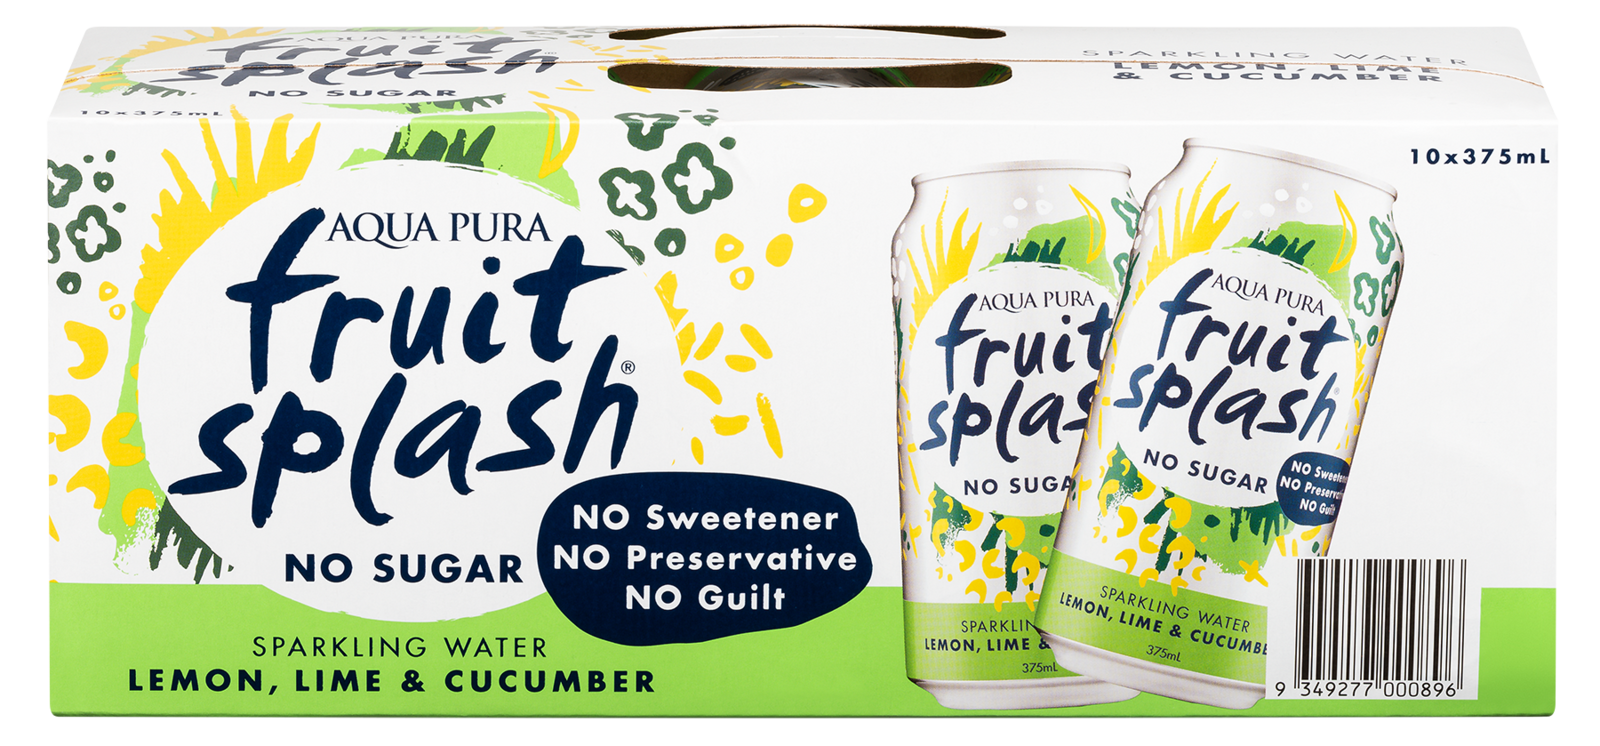 Aqua Pura Fruit Splash Lemon, Lime & Cucumber 375ml 10pk image